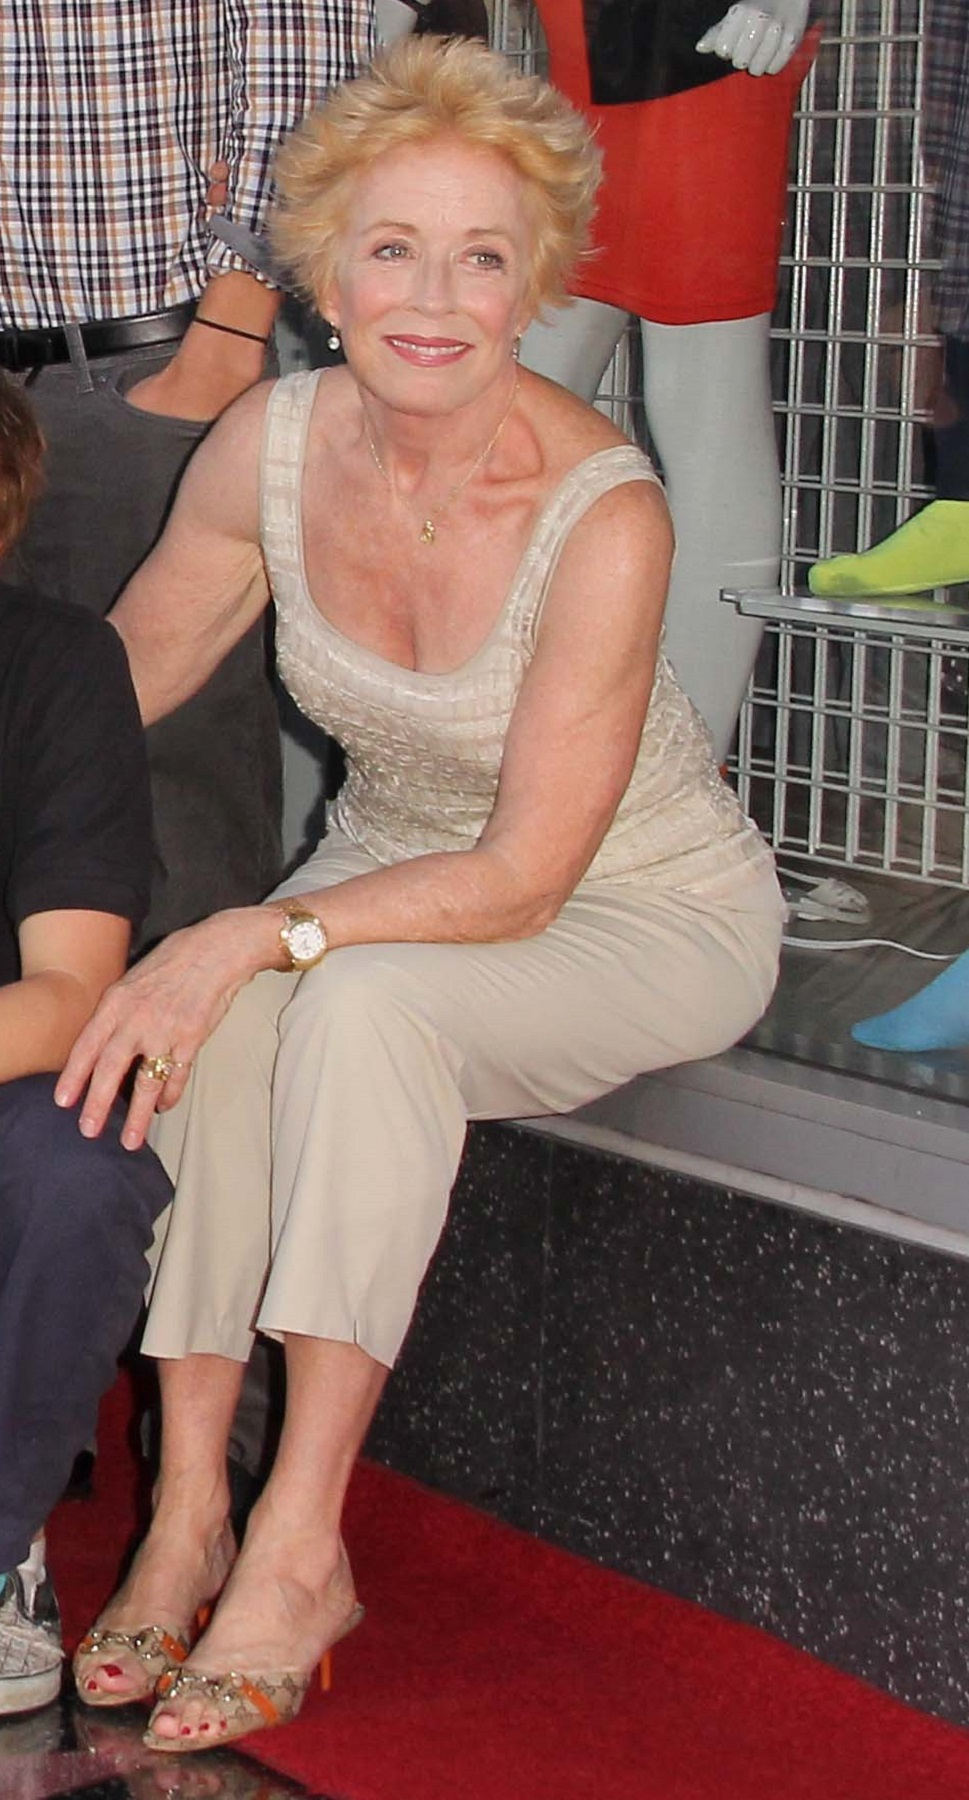 Leaked Feet Holland Taylor  nudes (64 images), iCloud, butt